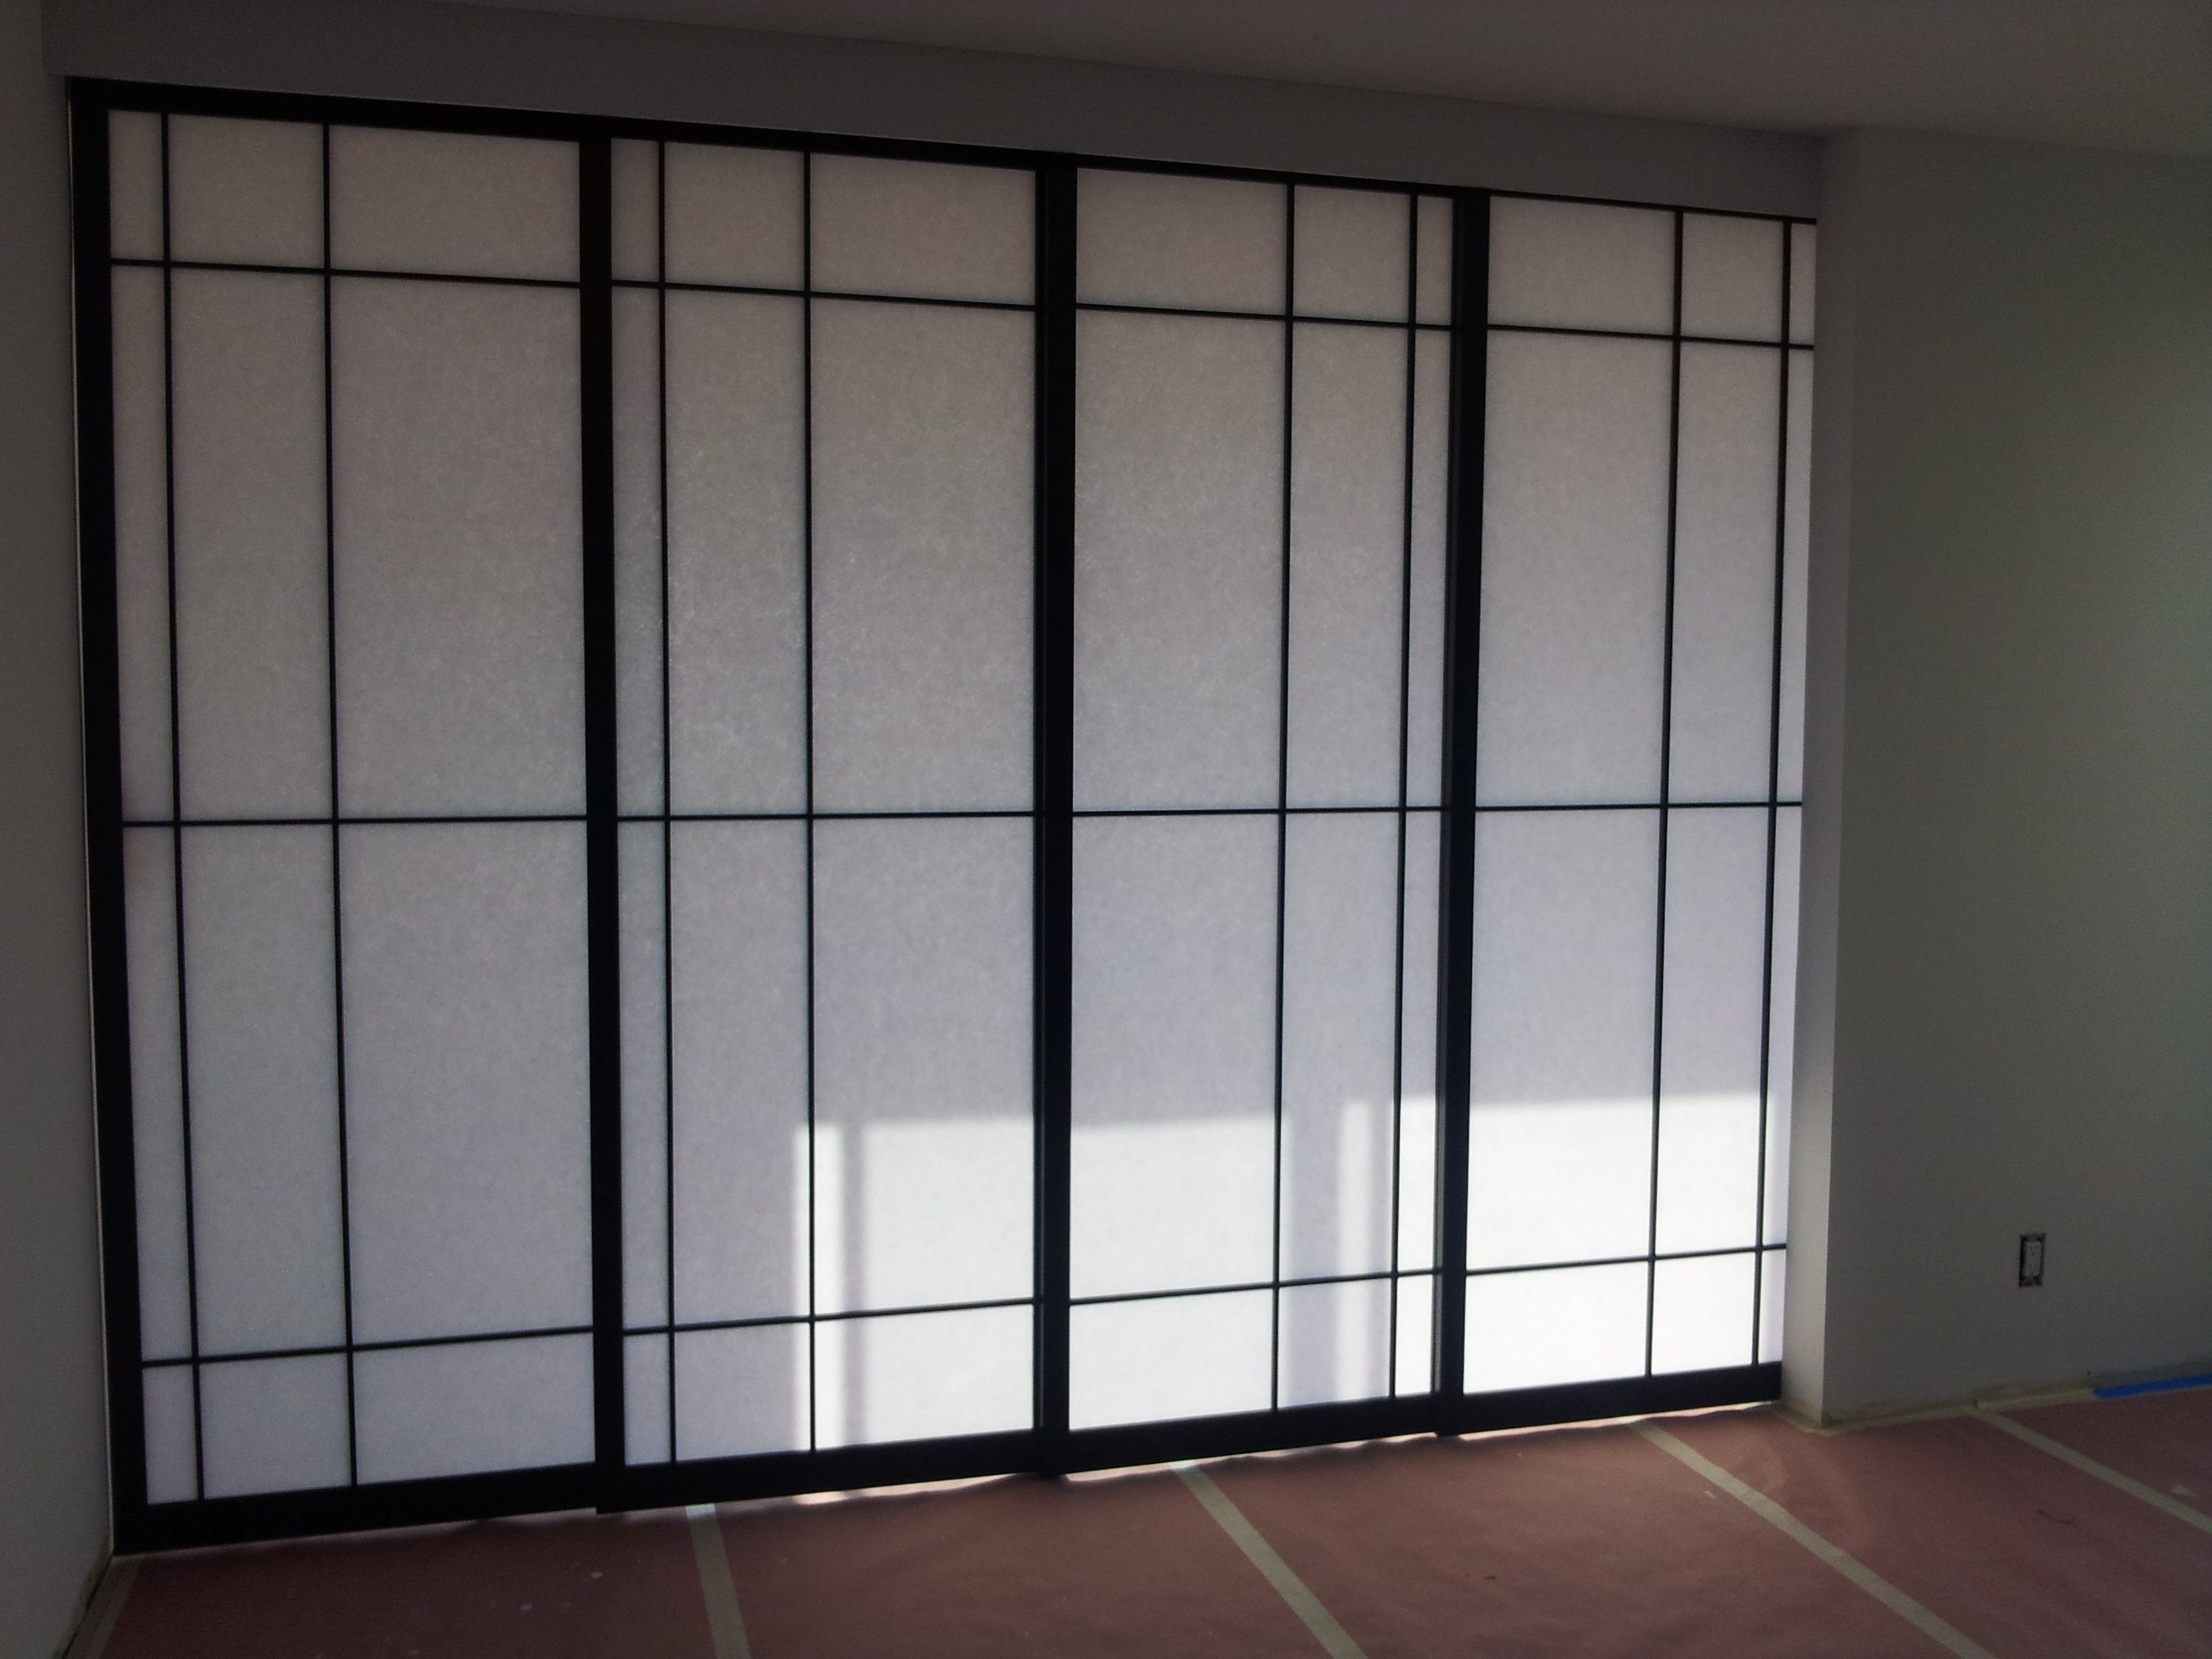 Are Those Chinese Wall Dividers Called Divider Frosted Glass Room